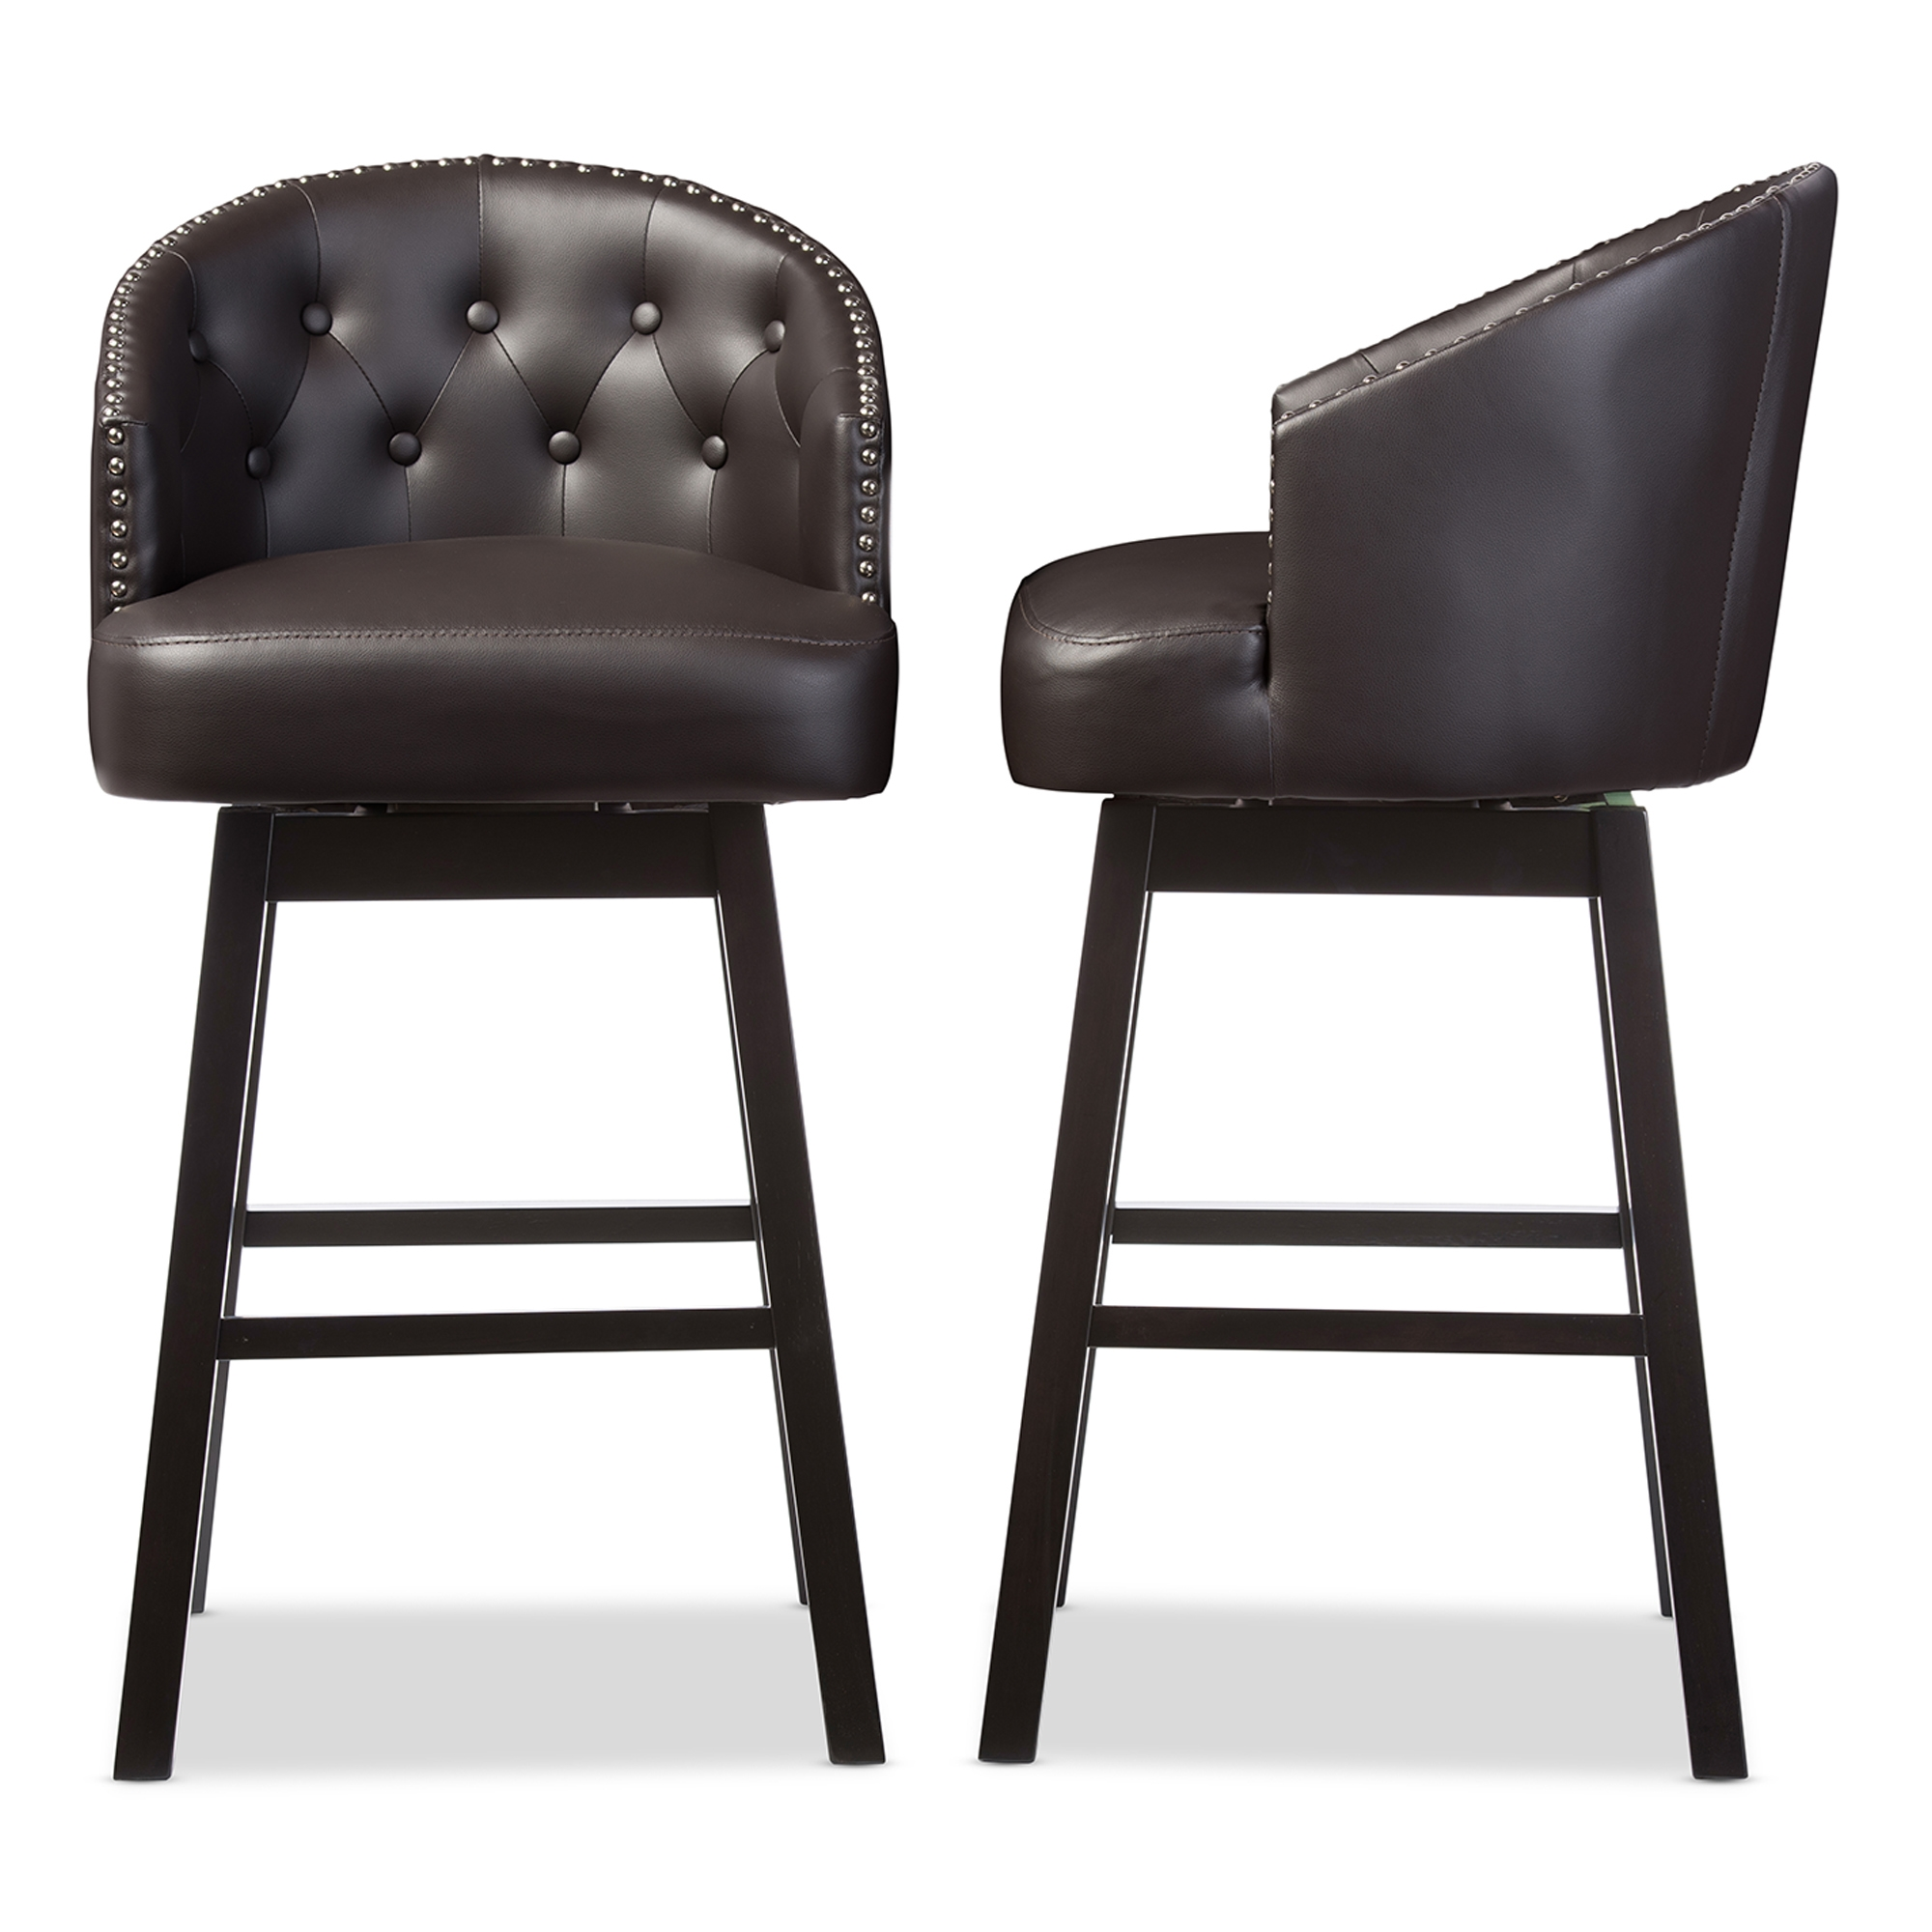 Attractive Baxton Studio Avril Modern And Contemporary Brown Faux Leather Tufted Swivel  Barstool With Nail Heads Trim